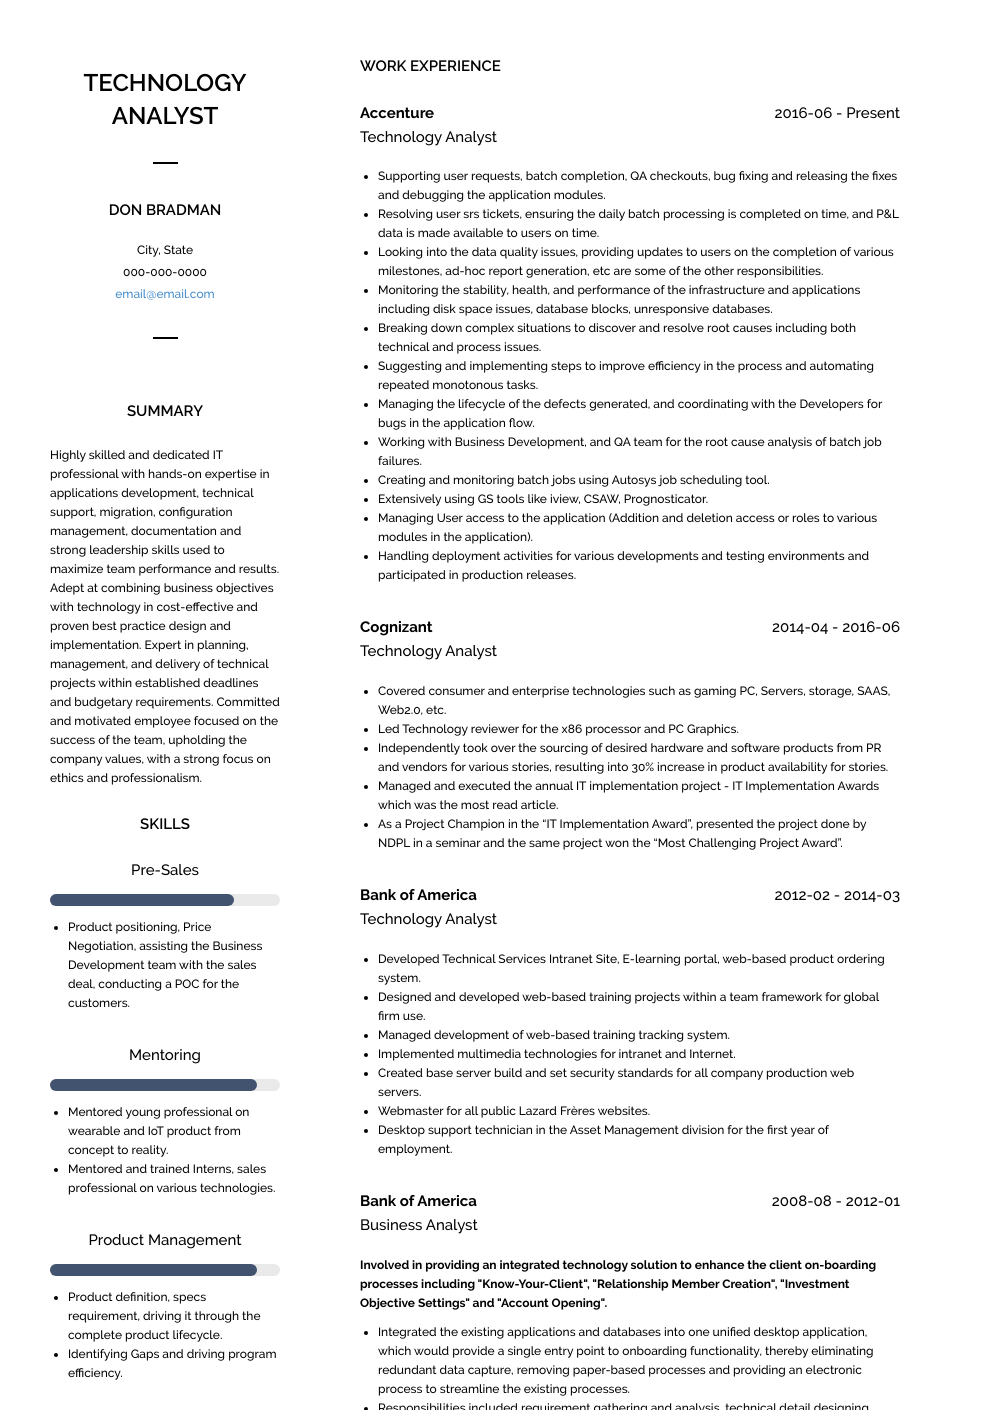 Technology Analyst Resume Sample